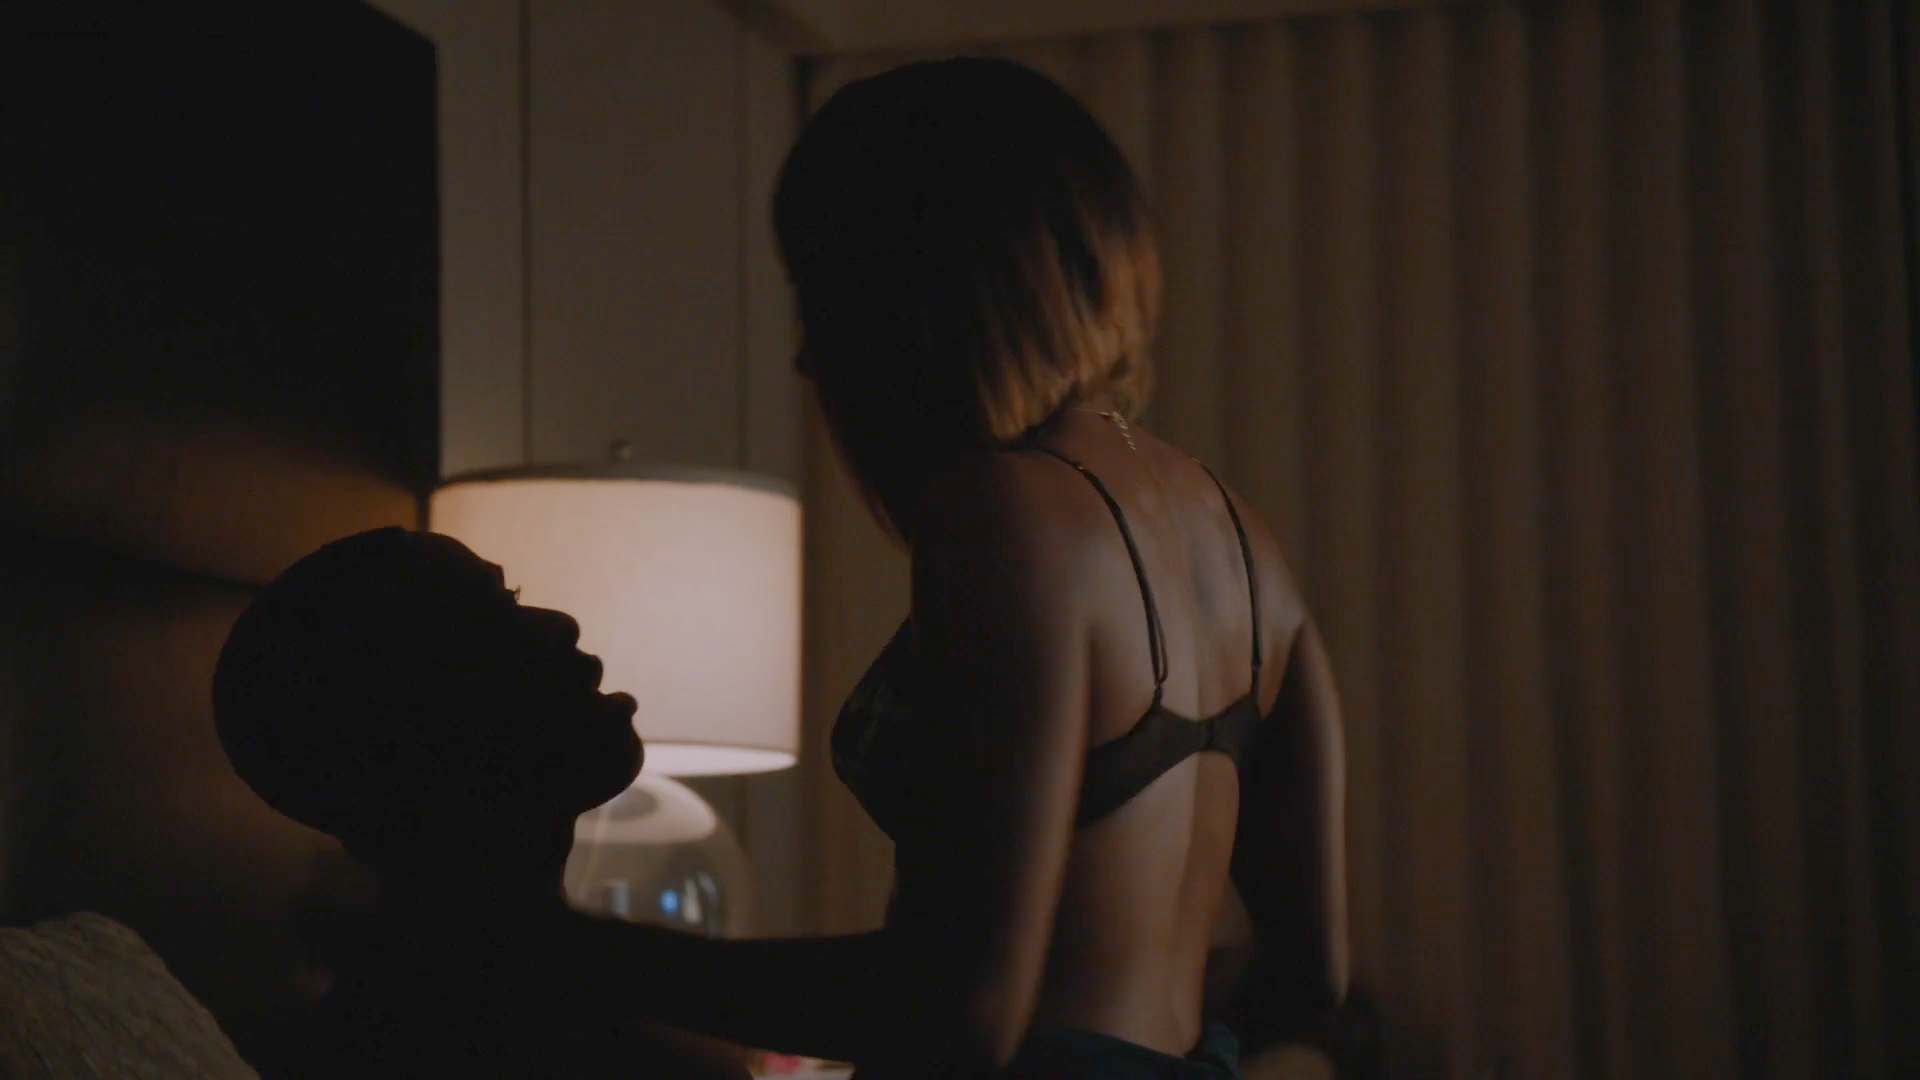 Dominique Perry nude sex and Nikki Vanderdyz nude - Insecure (2016) s1e8 HD 1080p (10)